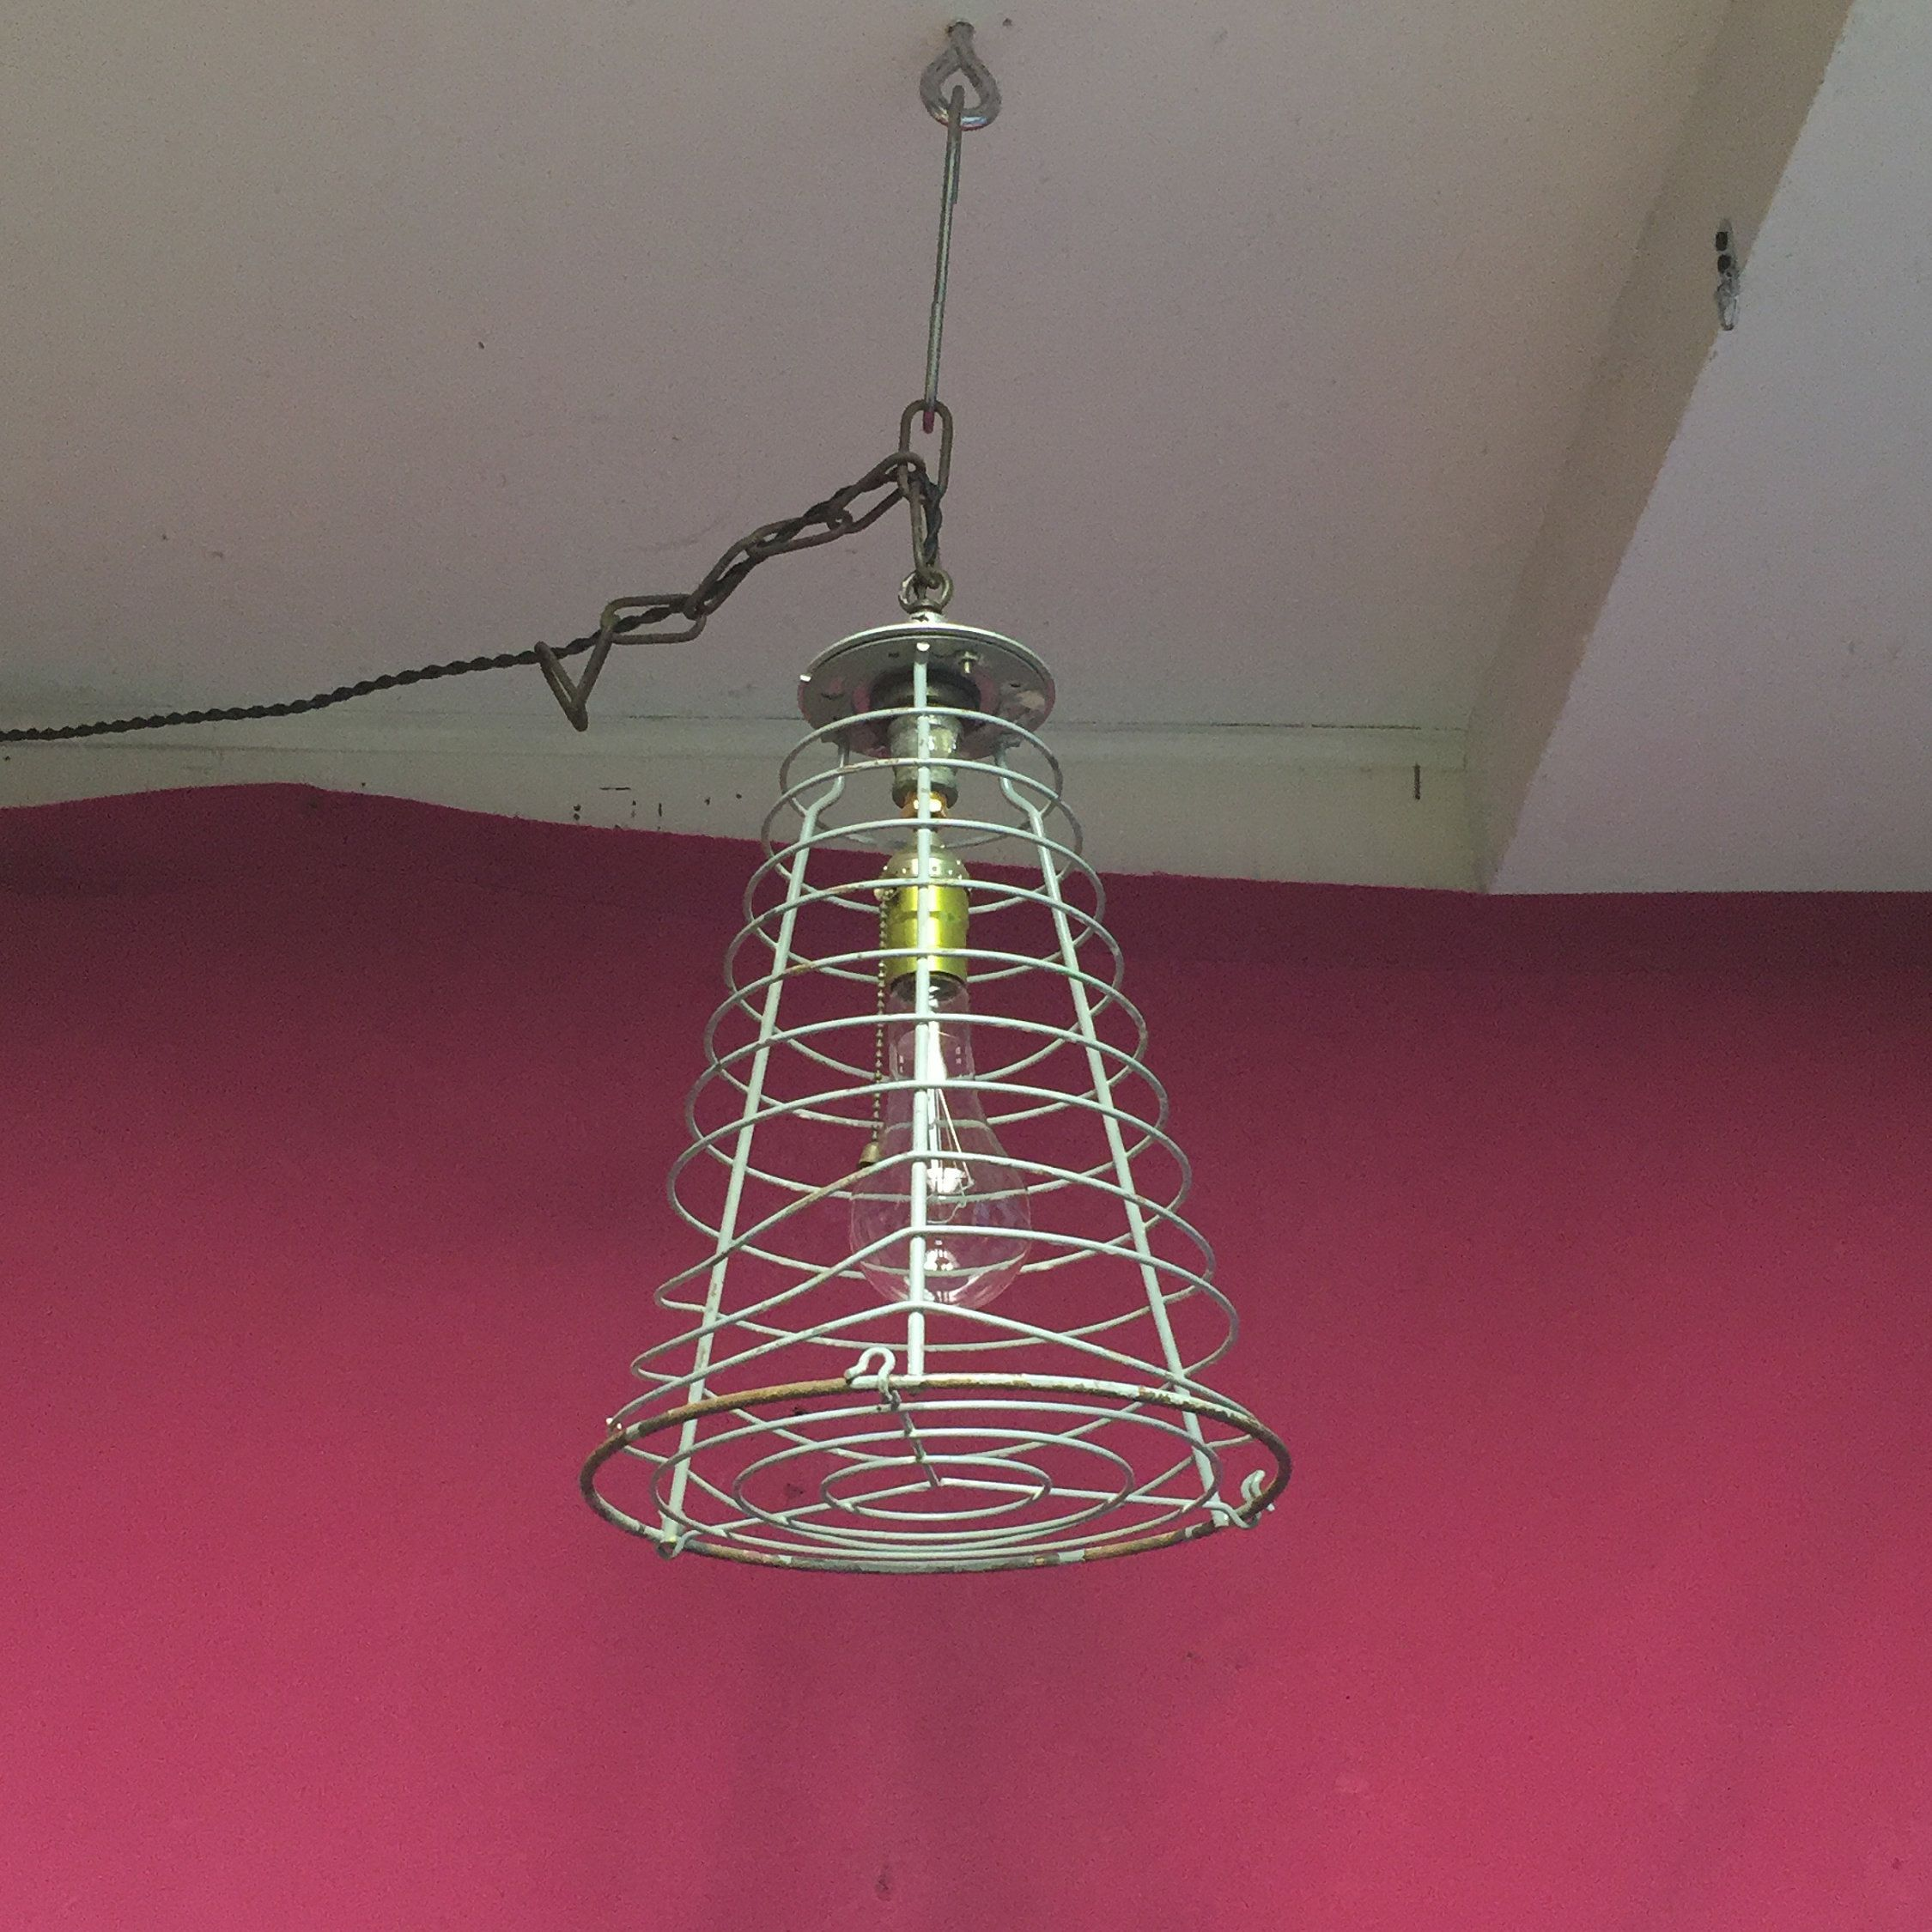 Unique Industrial Cage Pendant, Original Hanging Factory Light, Machine Age,